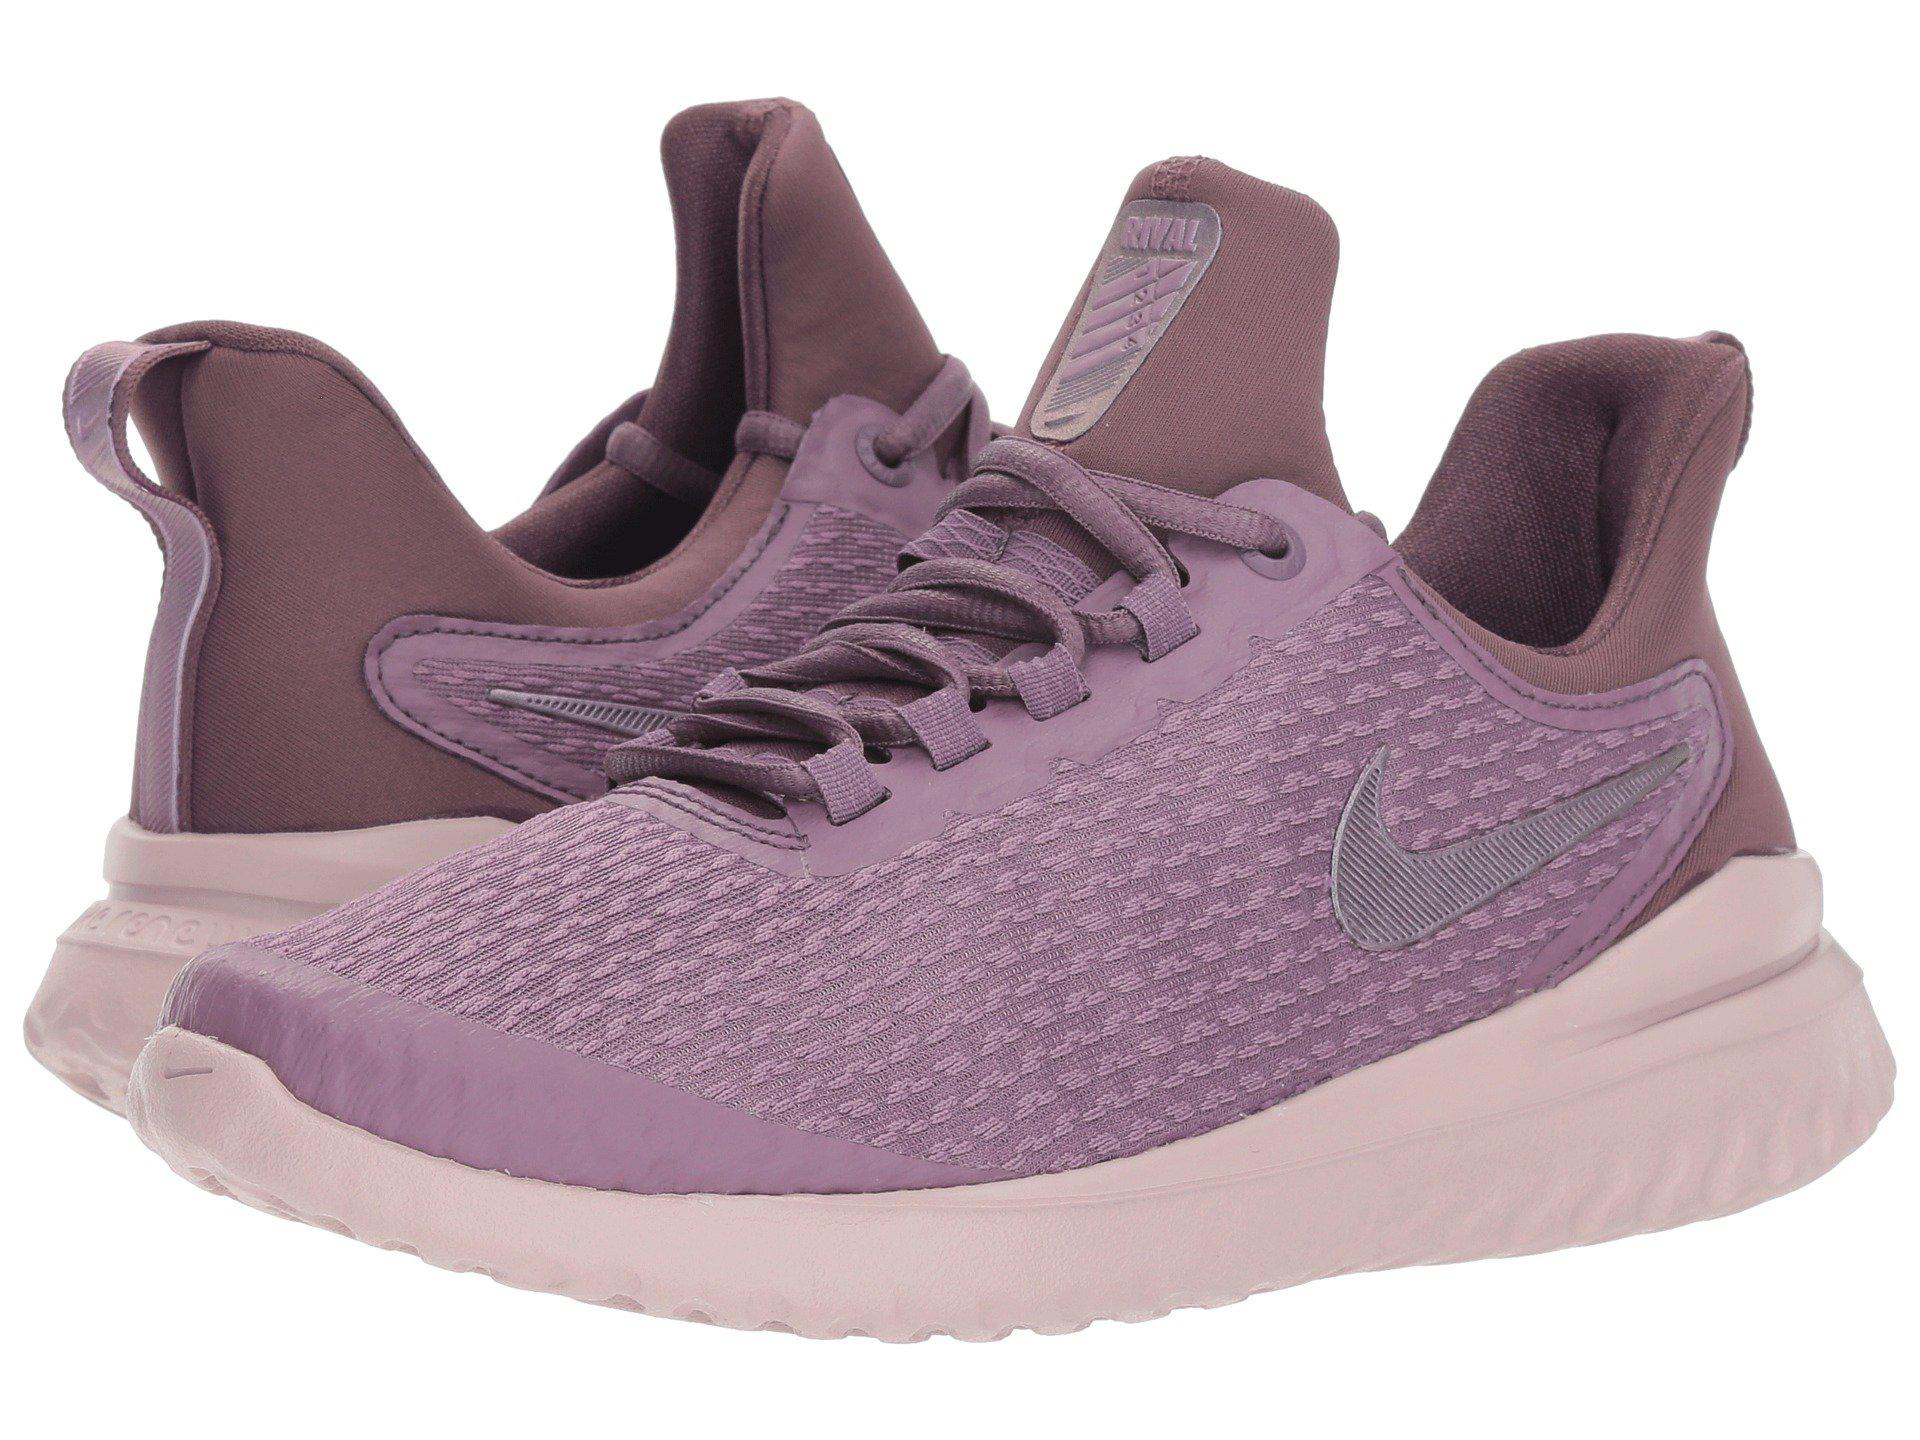 08f14ee2186 Lyst - Nike Renew Rival in Purple